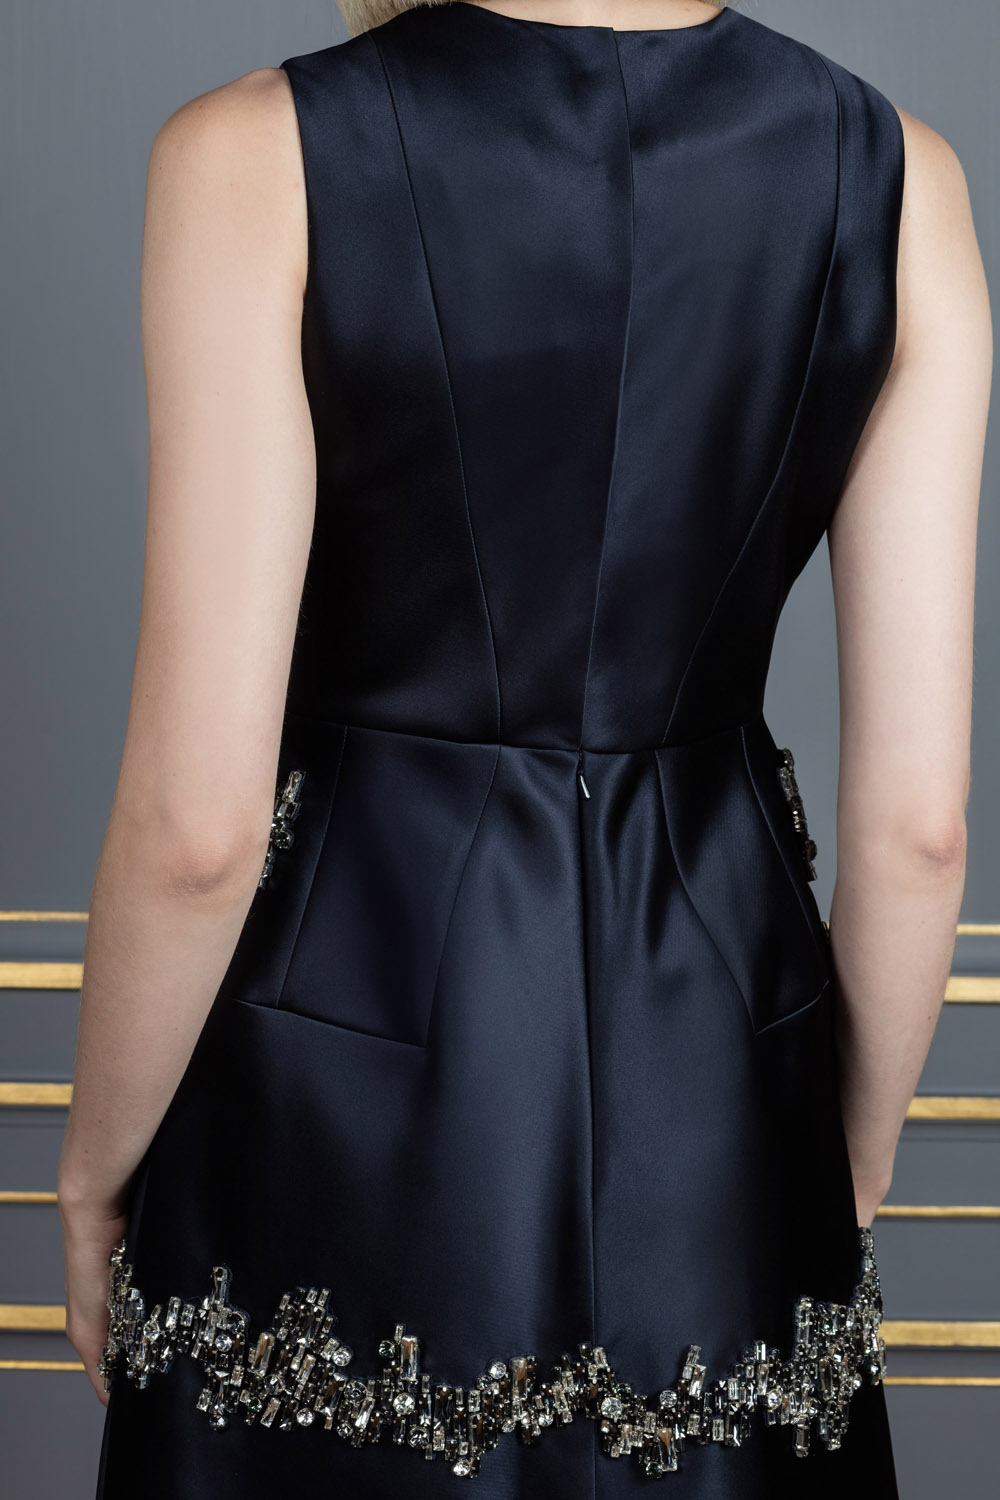 Black A-line dress with glass embroidery